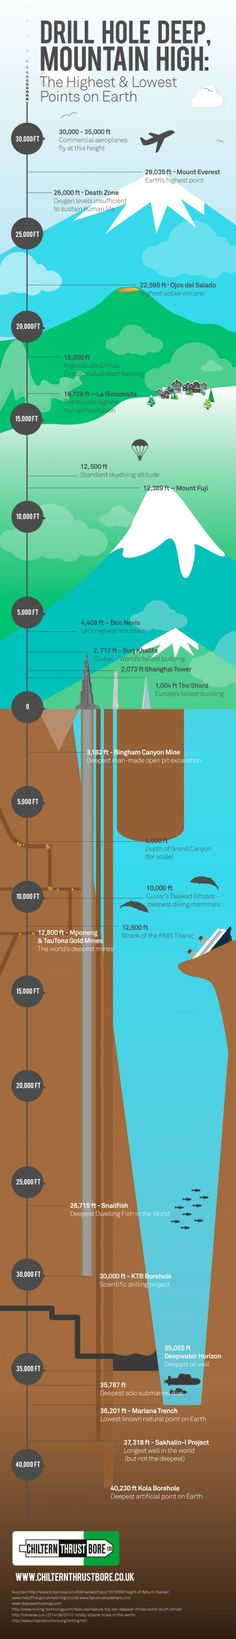 Highest and lowest points on Earth-Ever wonder how high the highest points on Earth are, in contrast to the deepest manmade boreholes and ocean trenches? Check out this fascinating infographic. 3/24/15